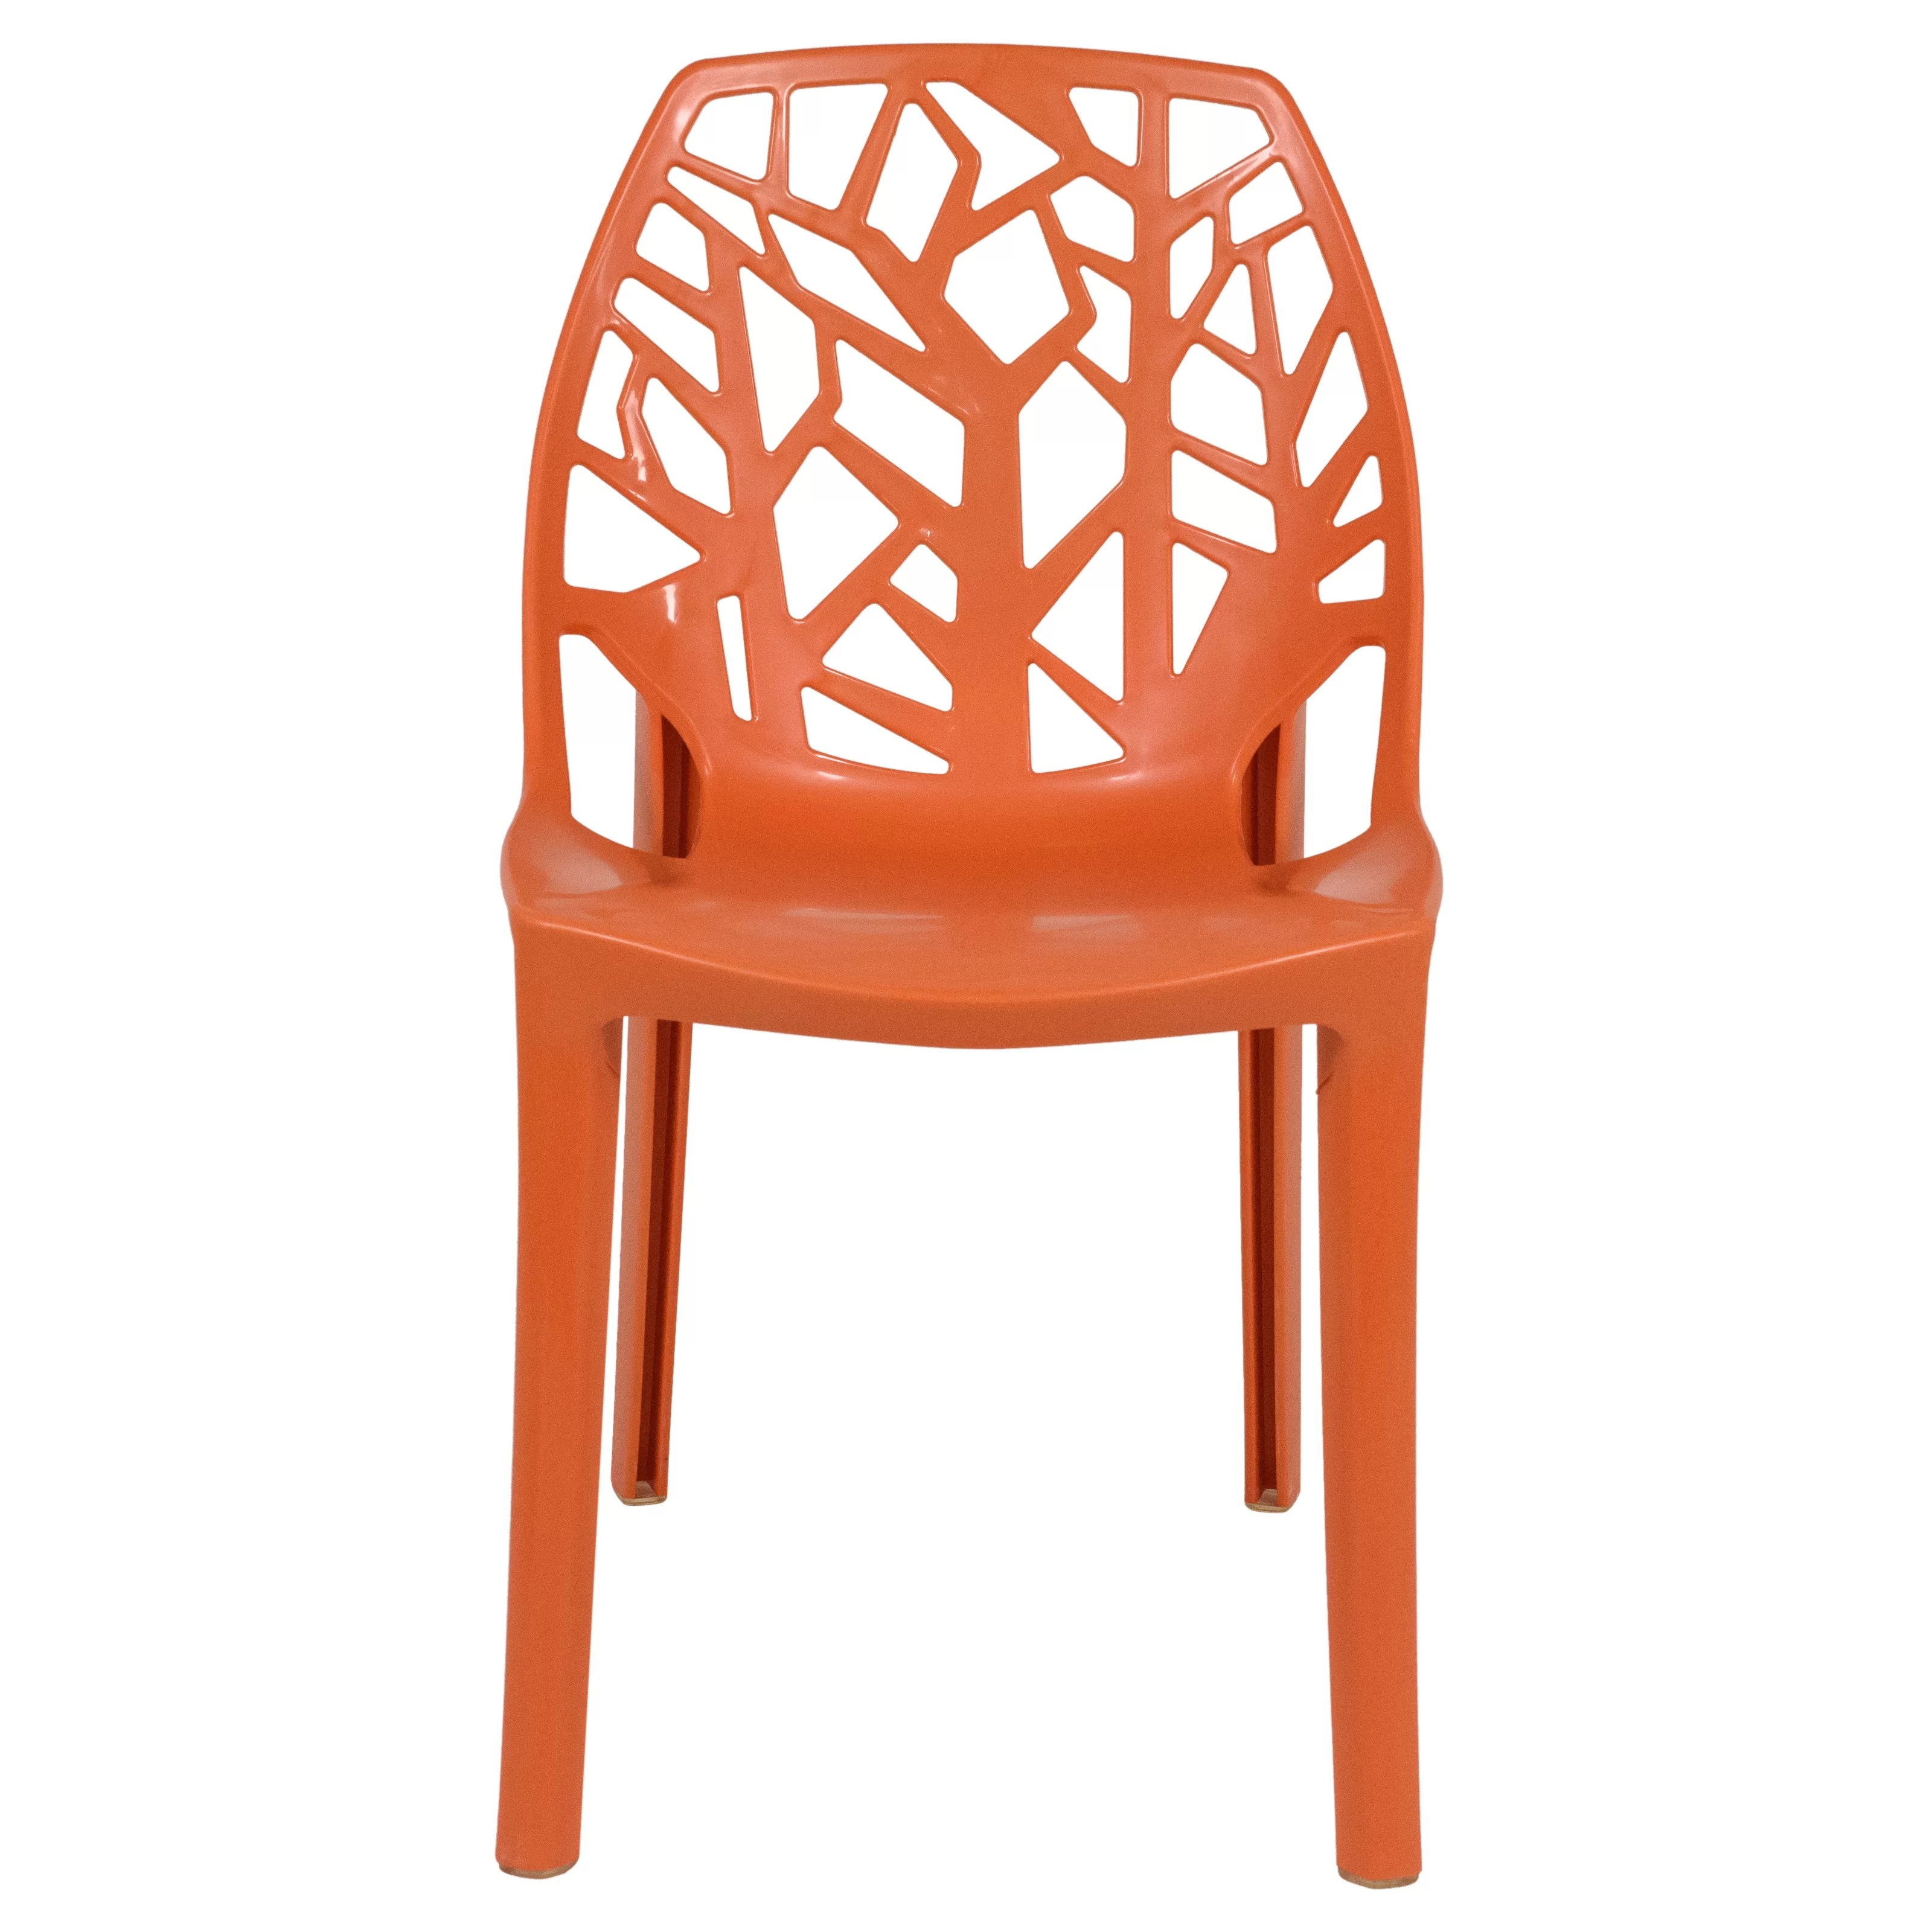 Stacking Dining Chairs Kimonte Stacking Patio Dining Chair